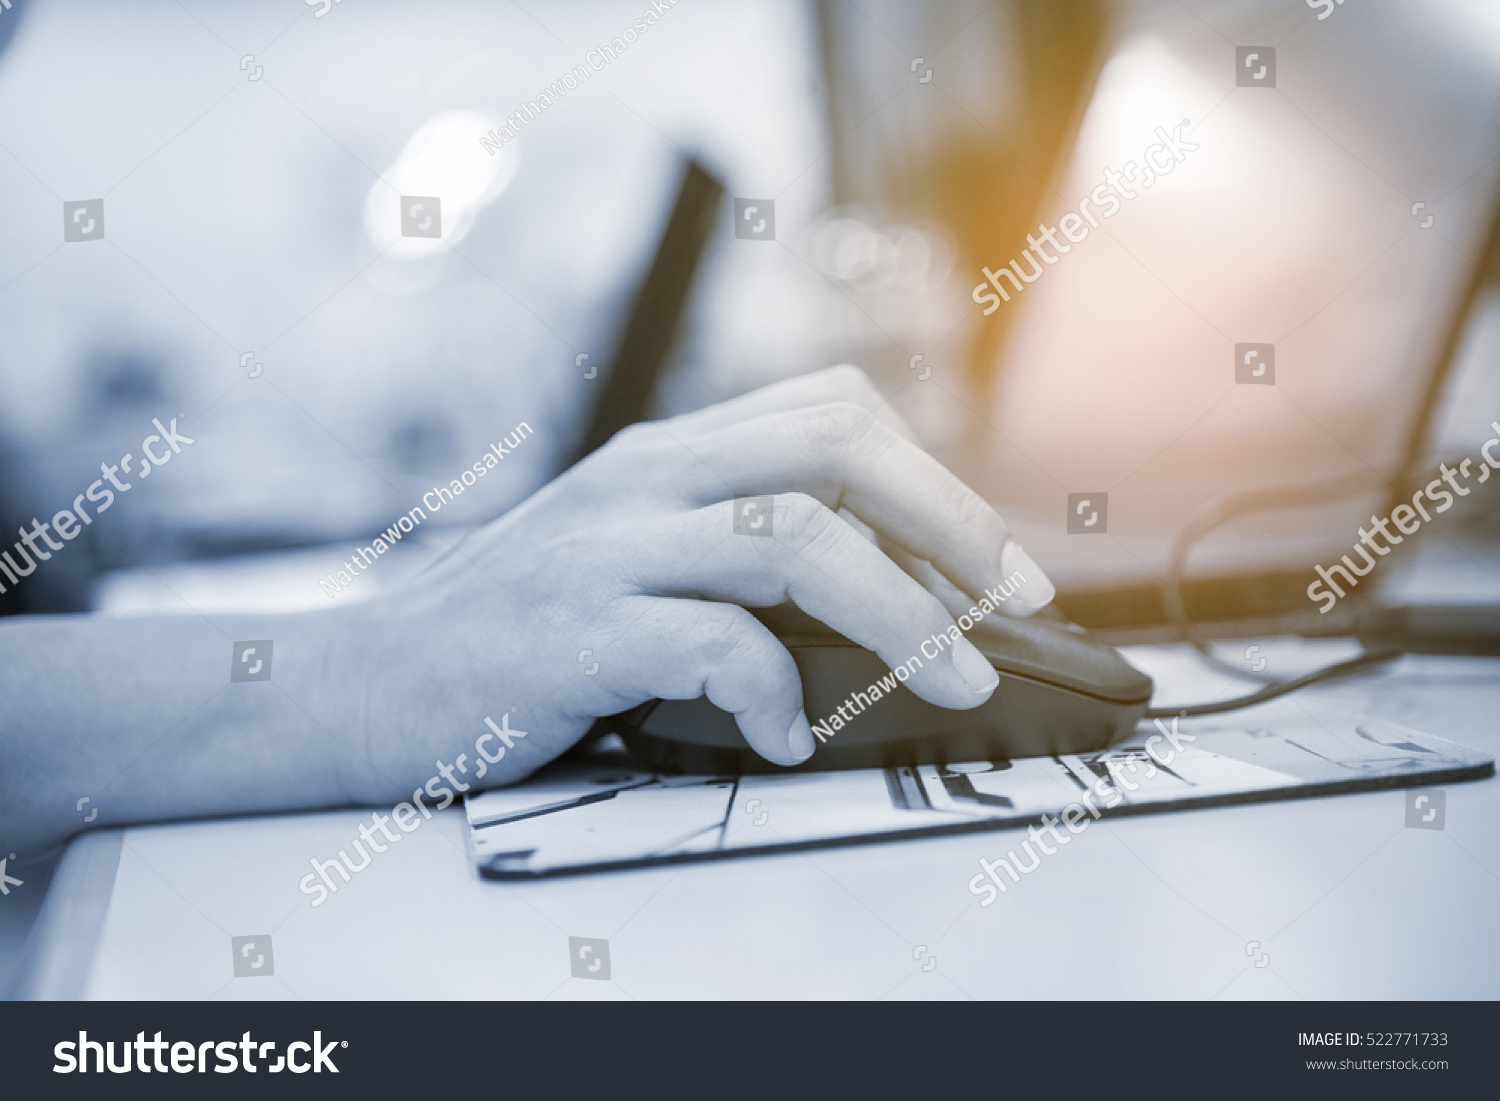 Image of hand clicking computer mouse